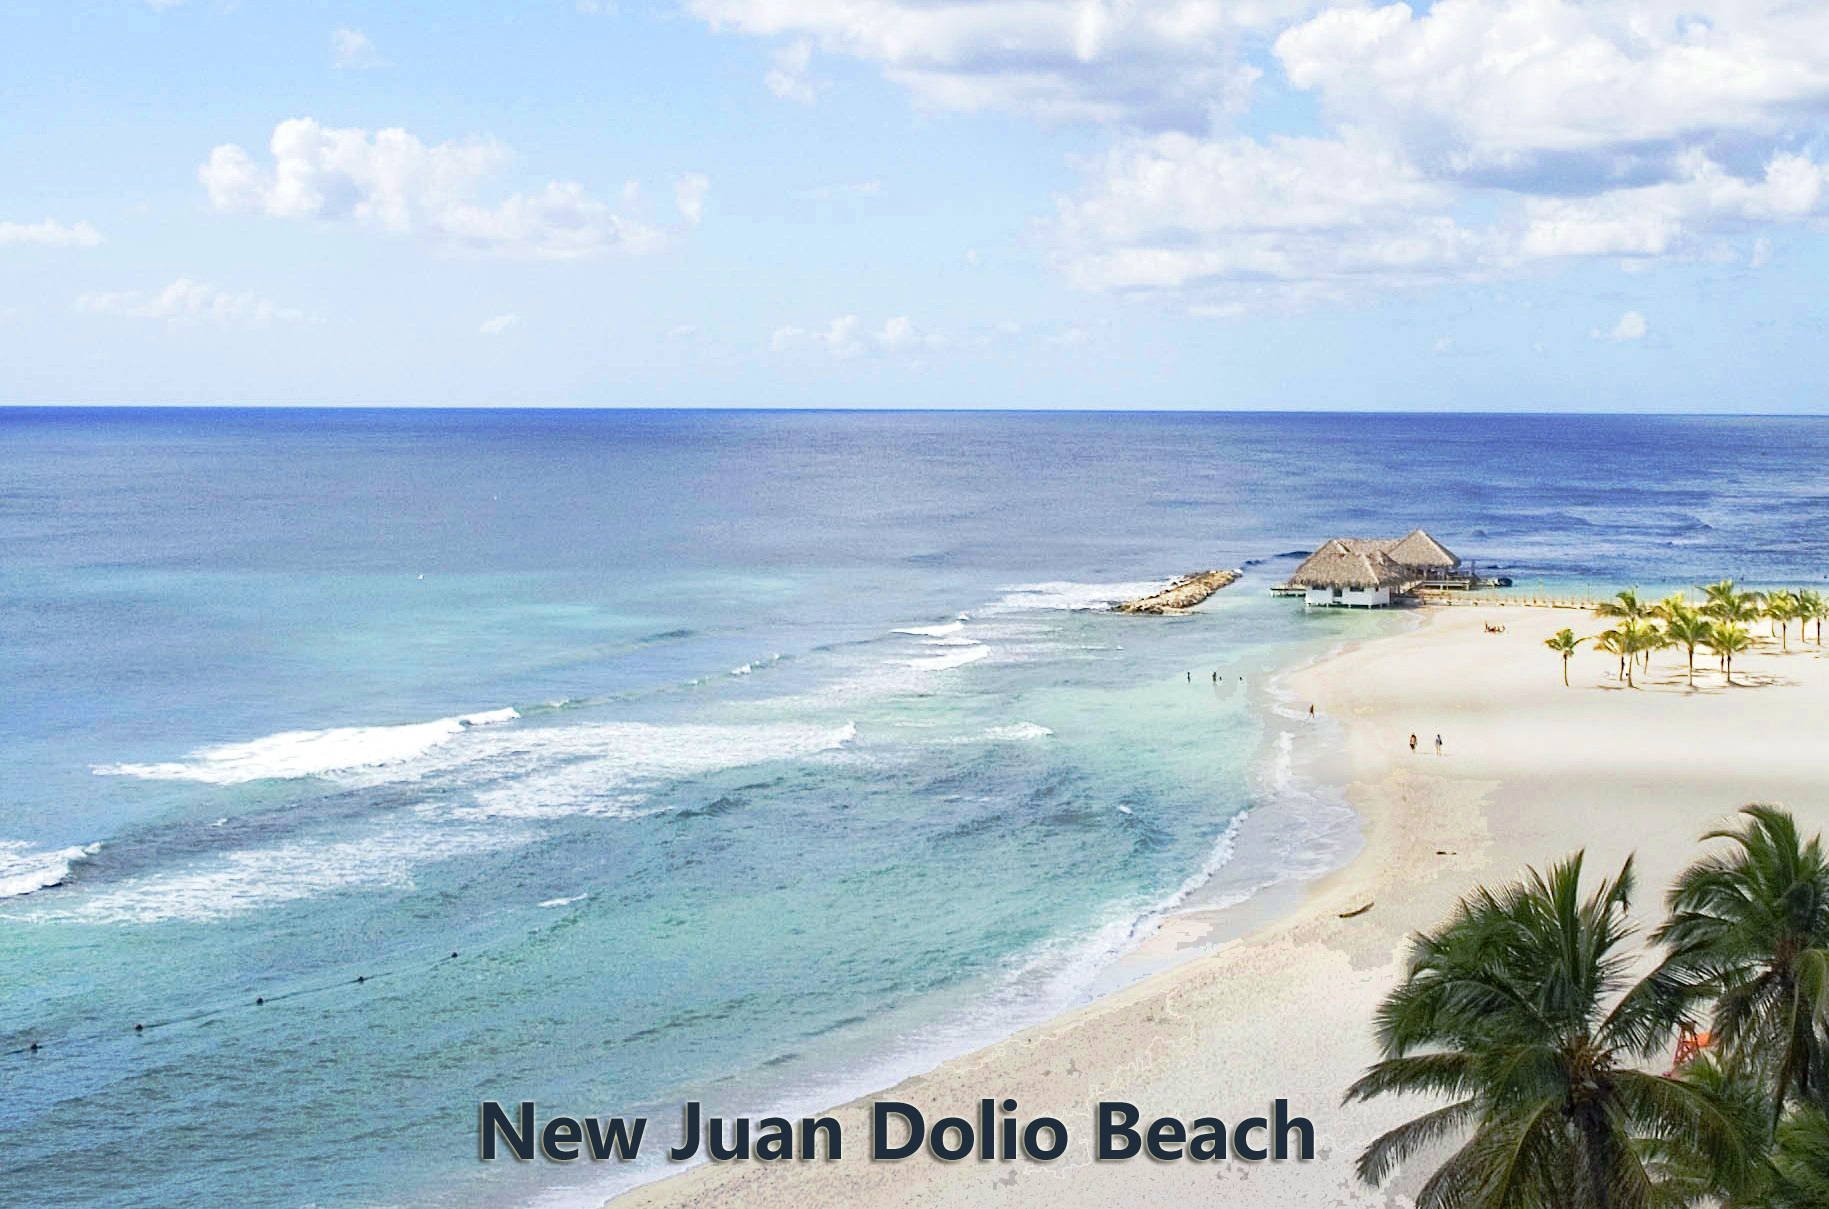 Juan Dolio Map Well as in West Juan Dolio